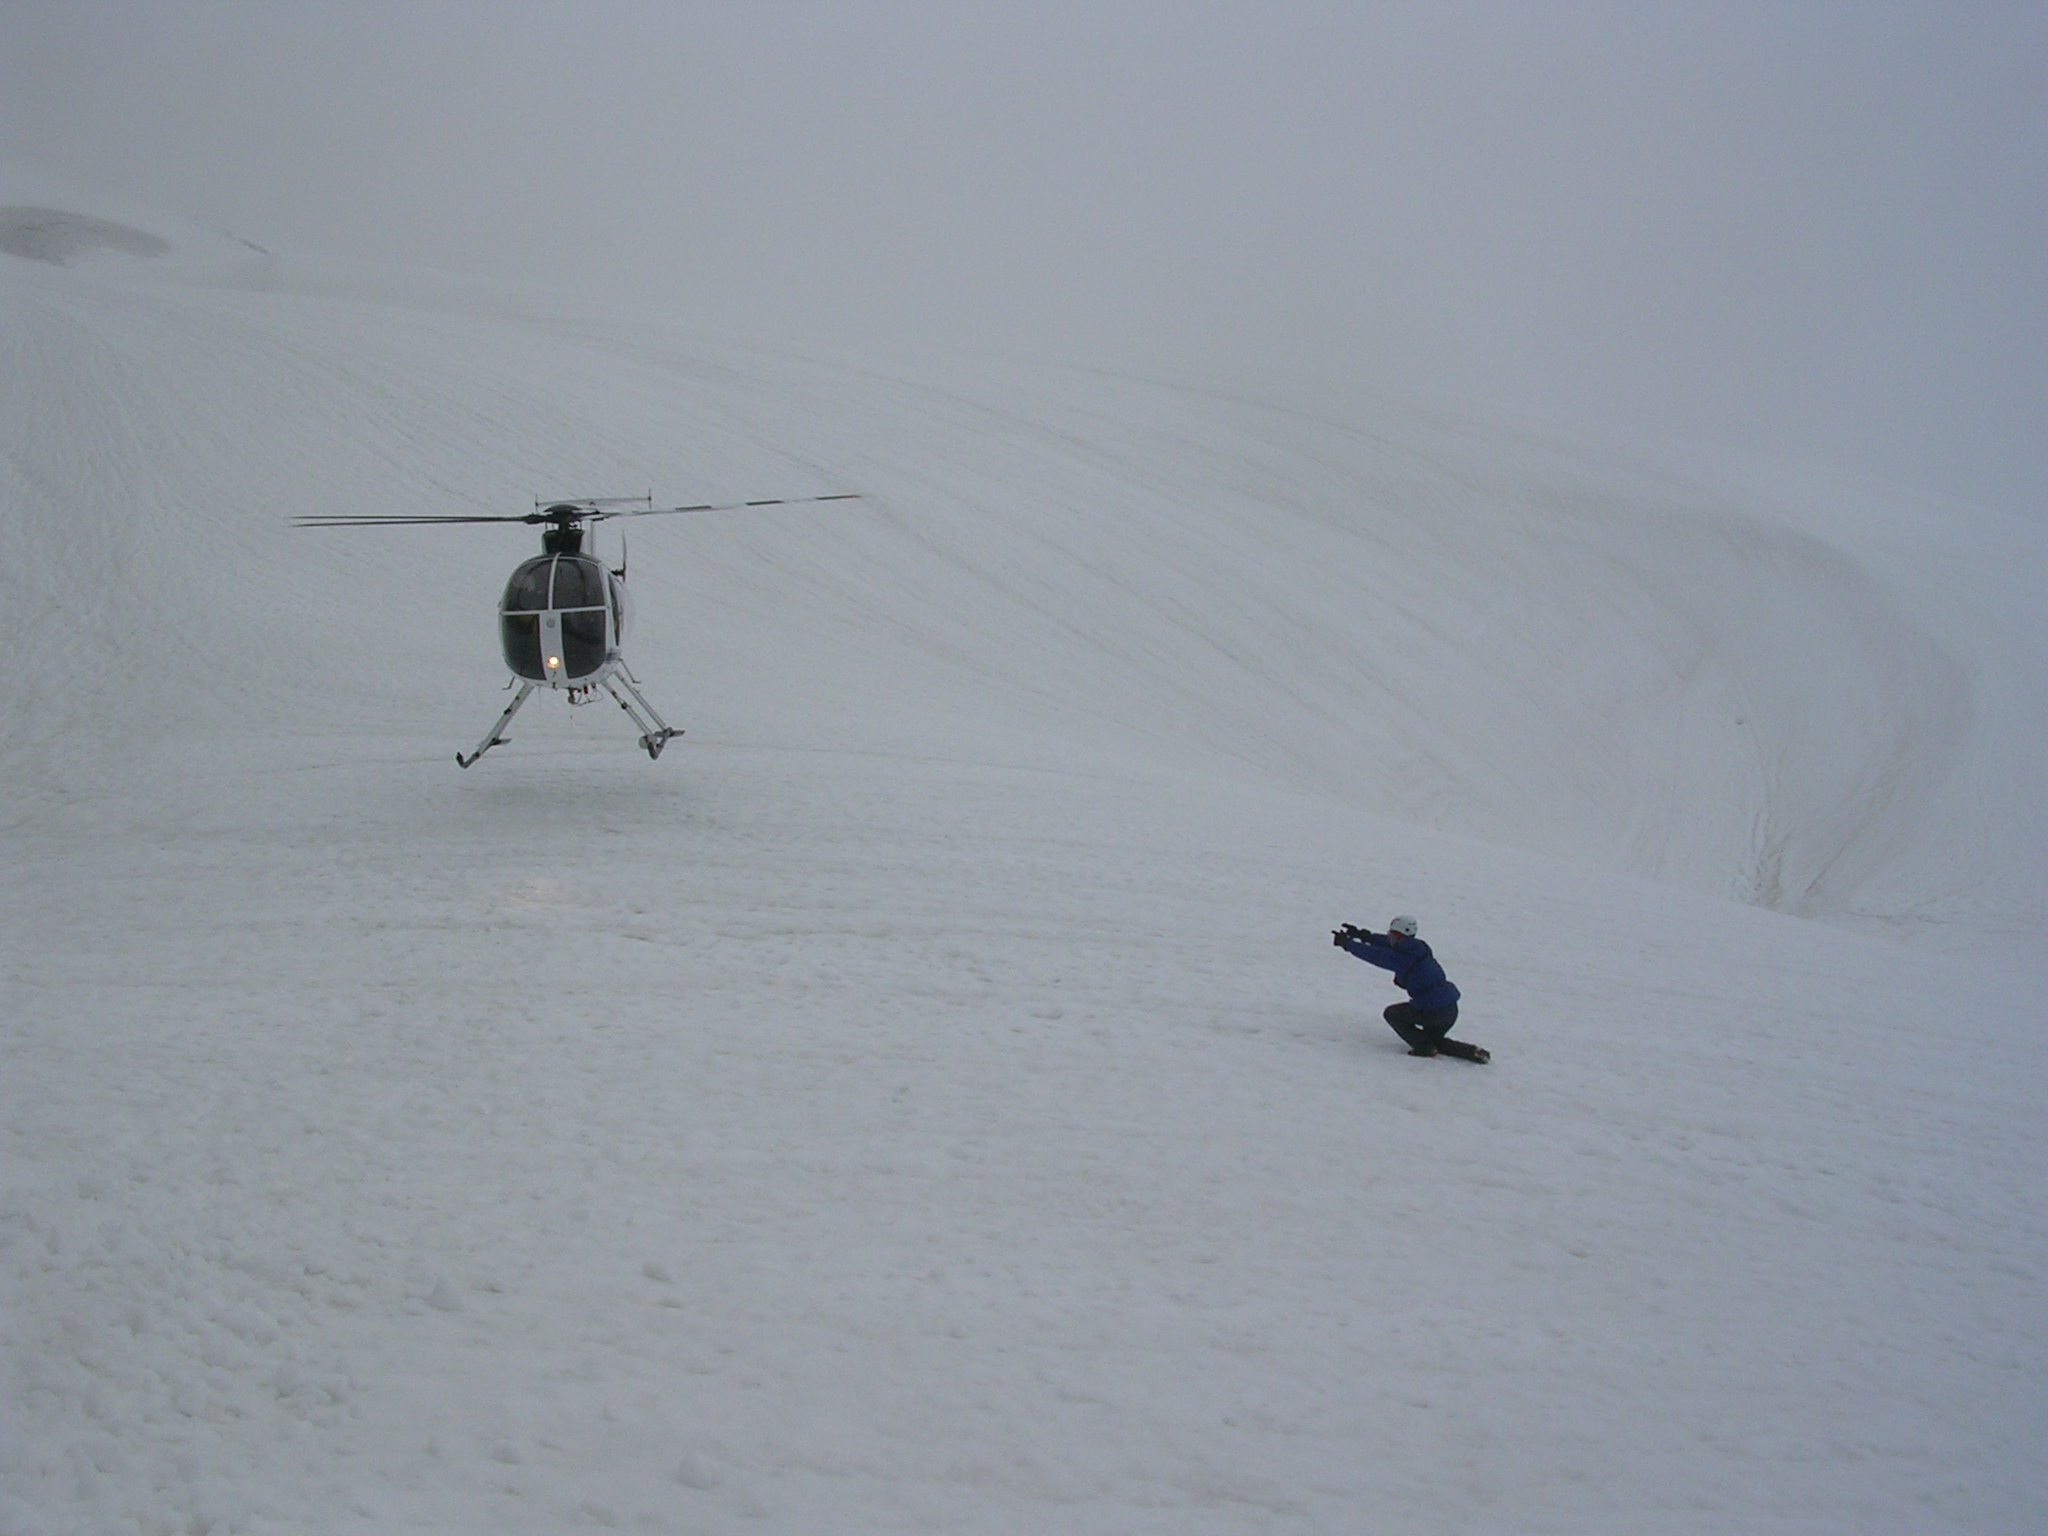 Helicopter landing in fog on glacier with person directing the landing